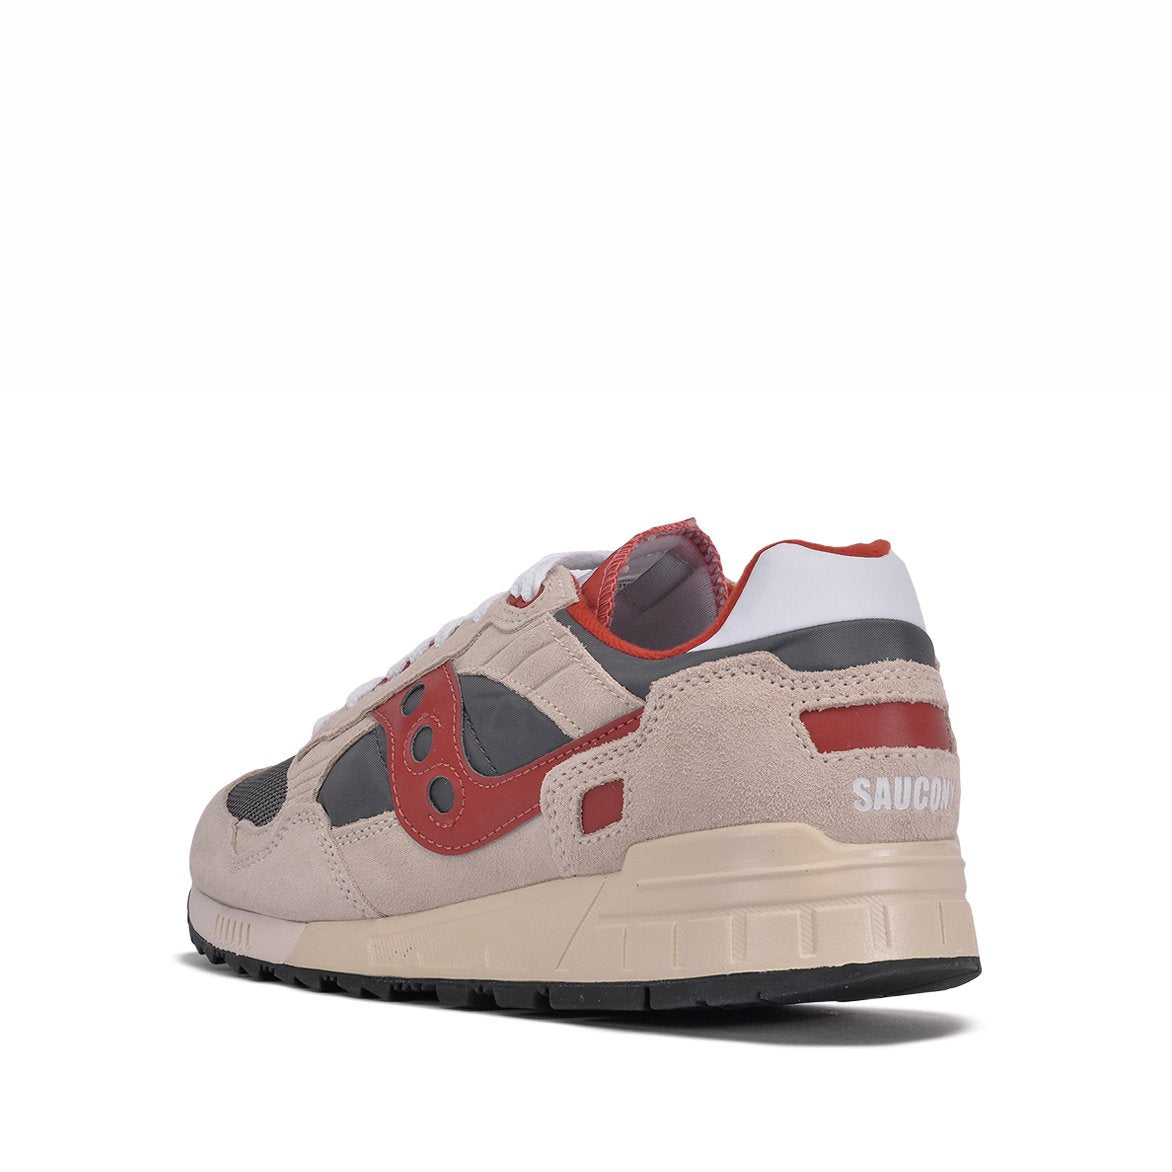 SHADOW 5000 VINTAGE - OFF WHITE / GREY / RED